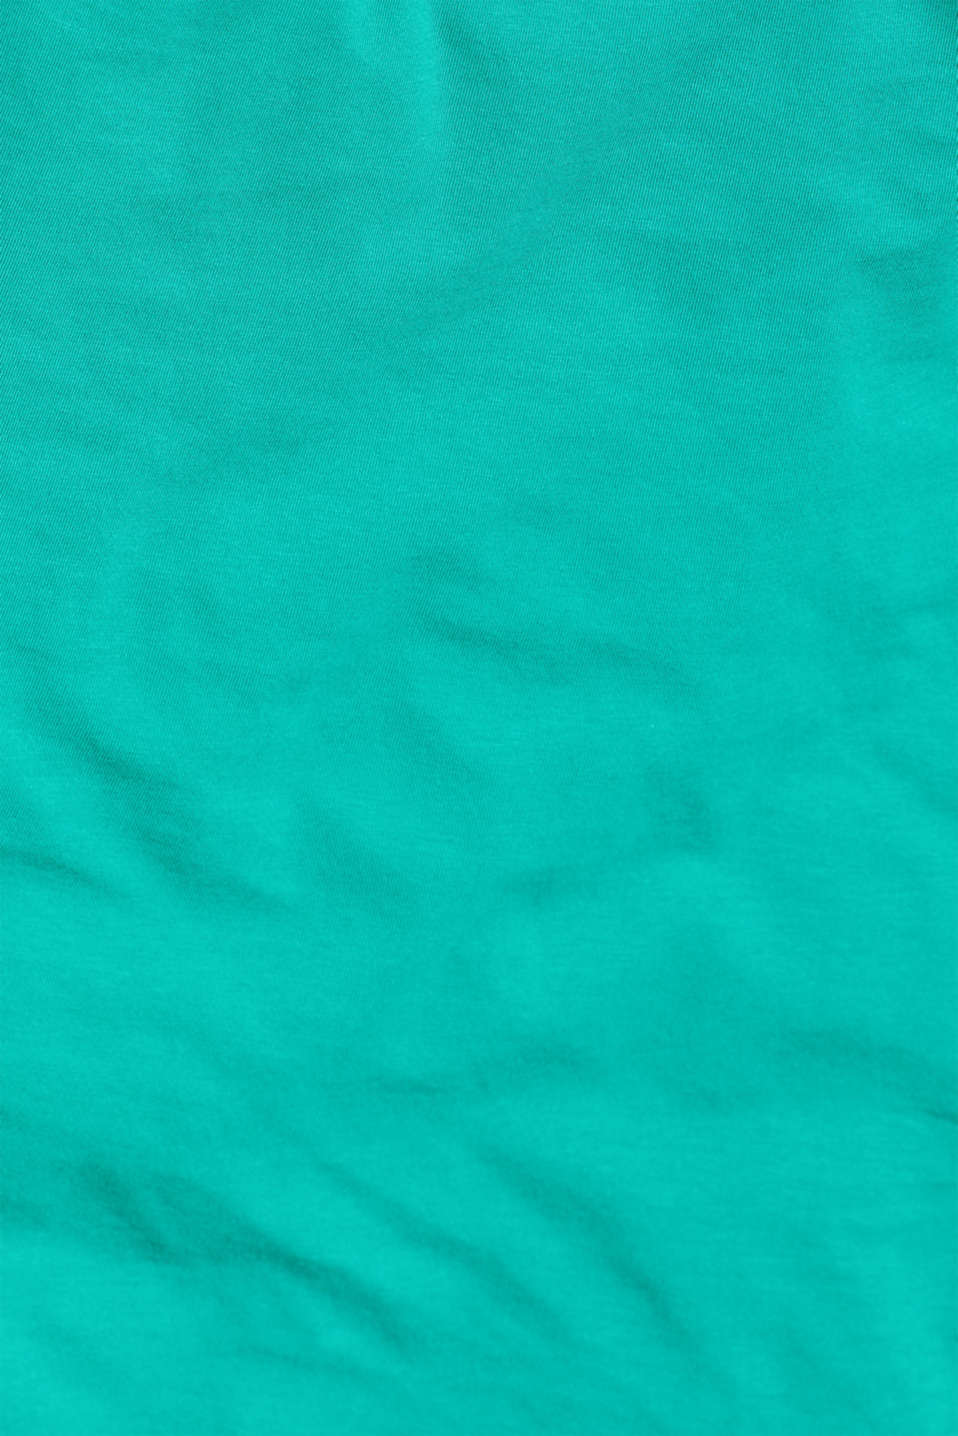 Stretch vest containing organic cotton, EMERALD GREEN 4, detail image number 4